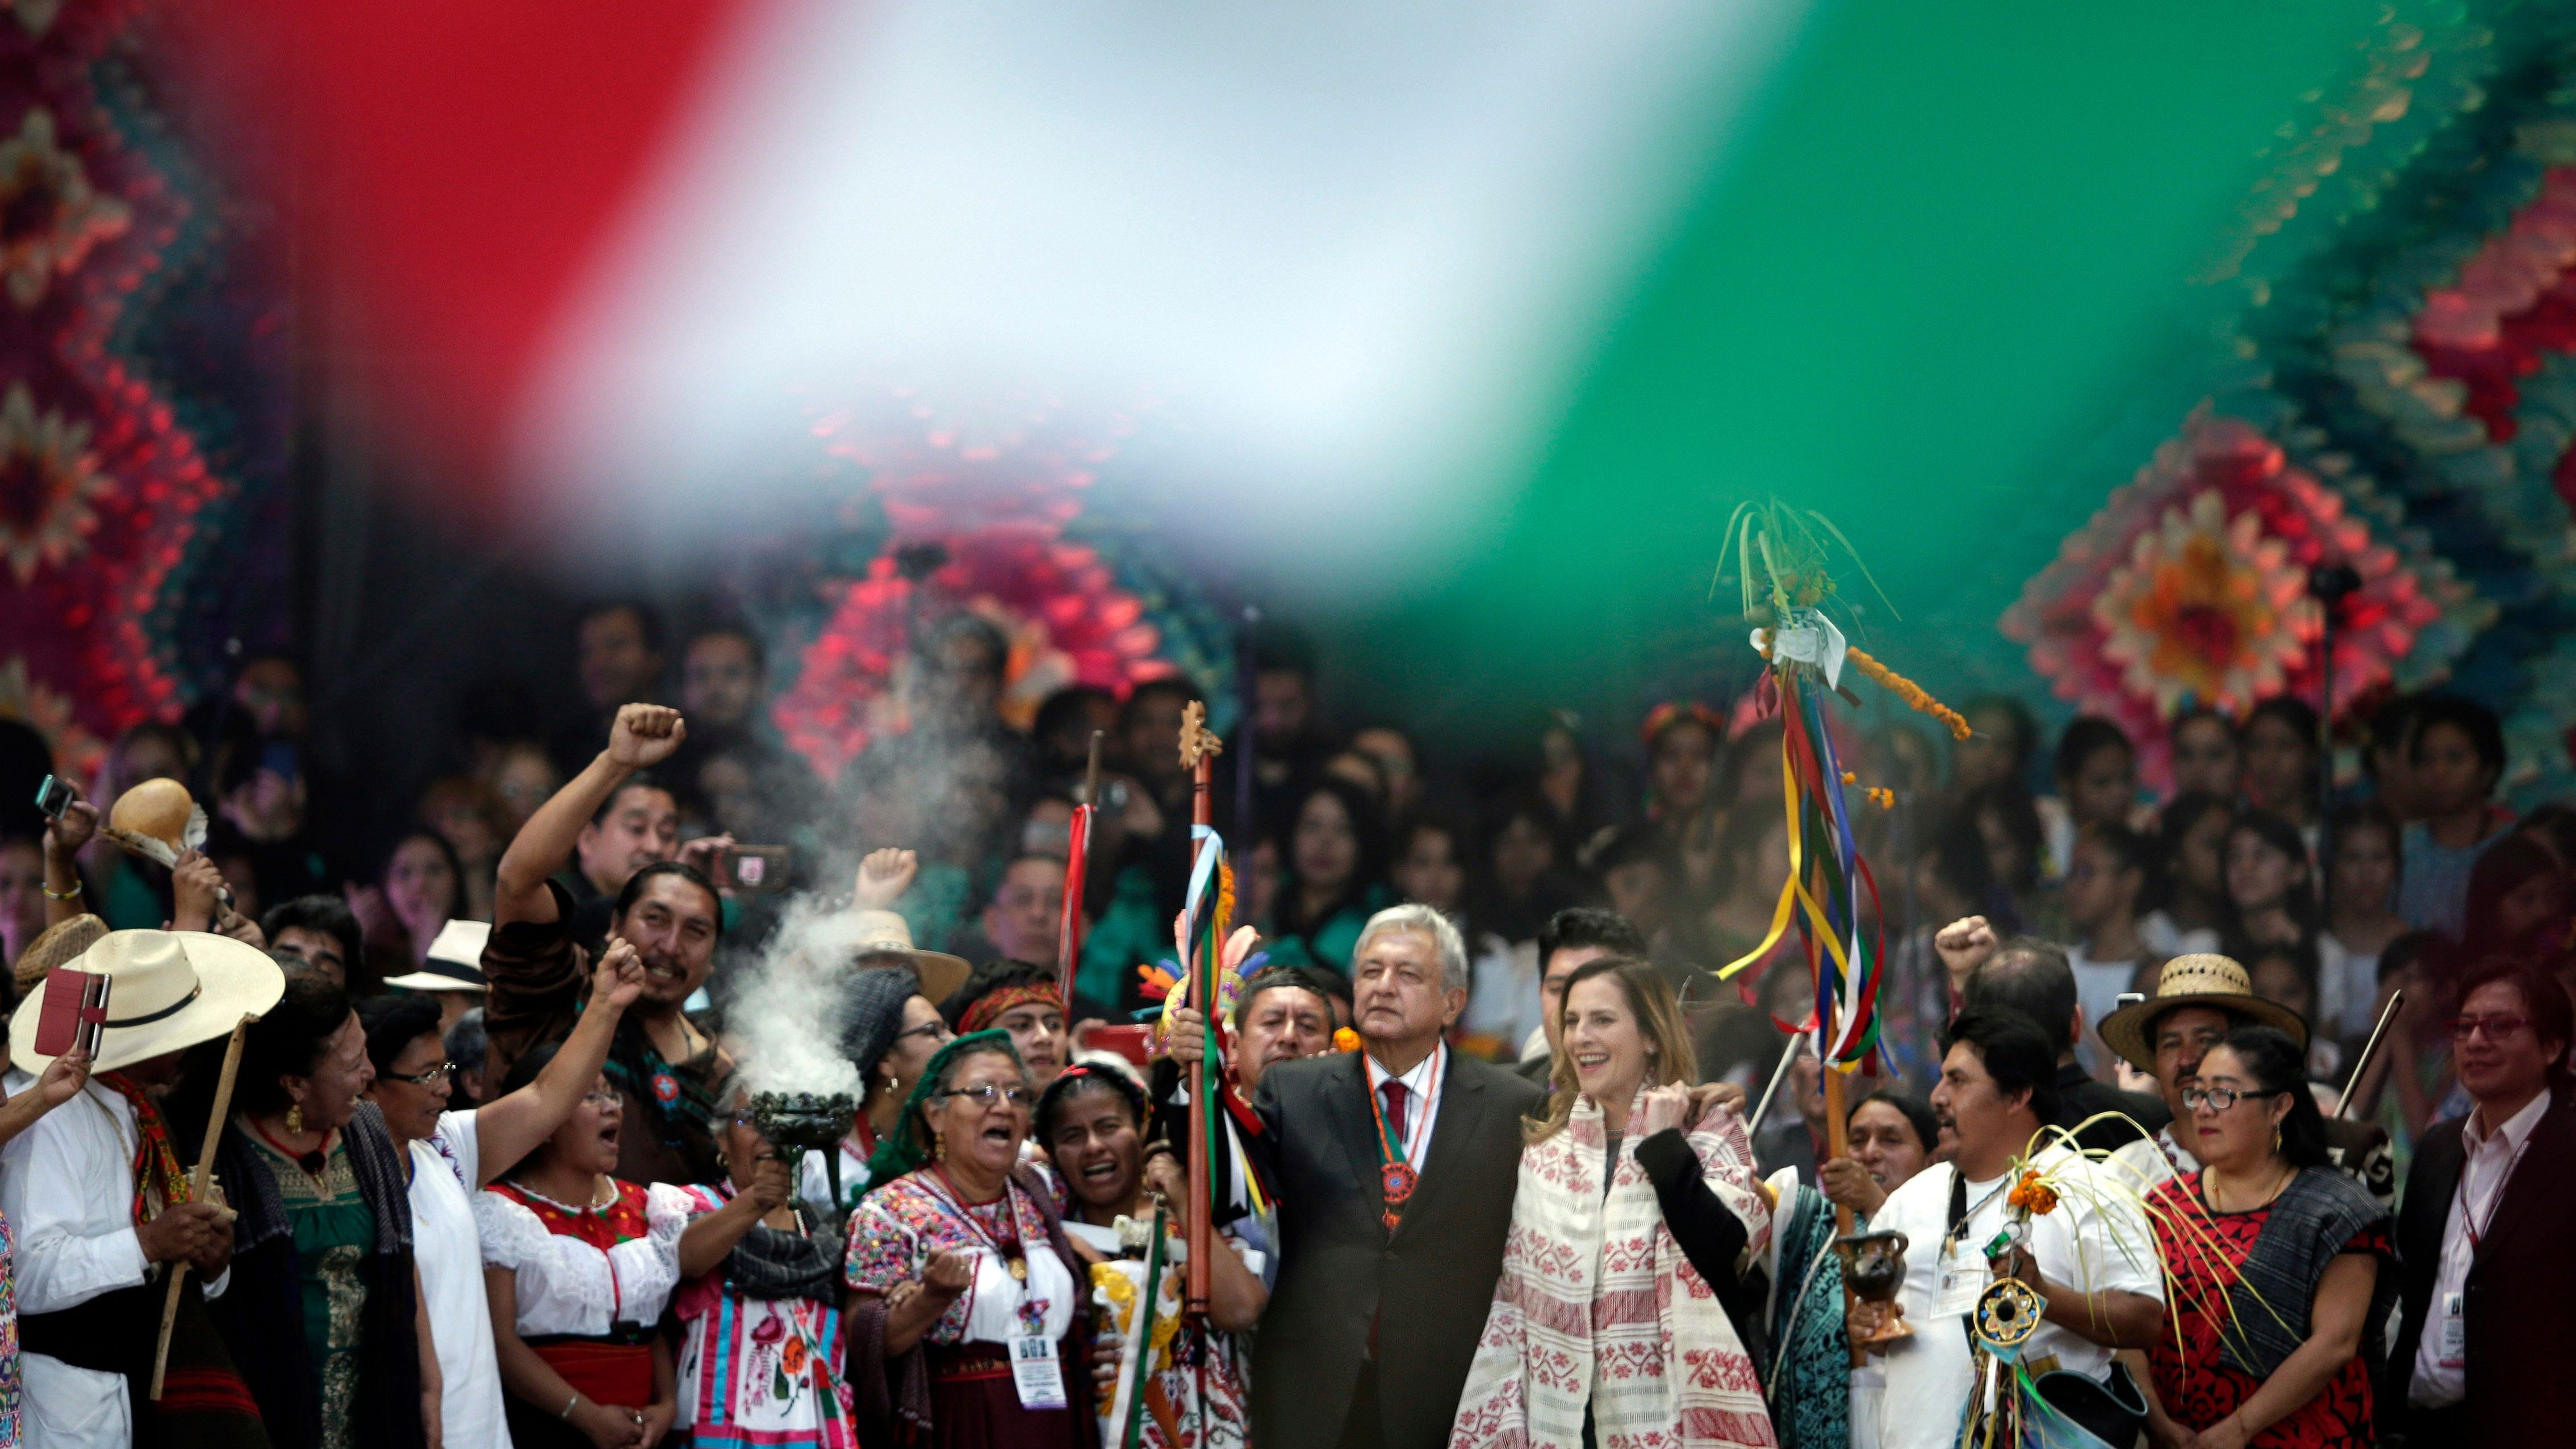 Mexico's newly sworn-in President Andres Manuel Lopez Obrador holds up a chieftain's staff during a traditional indigenous ceremony at the Zocalo, in Mexico City,